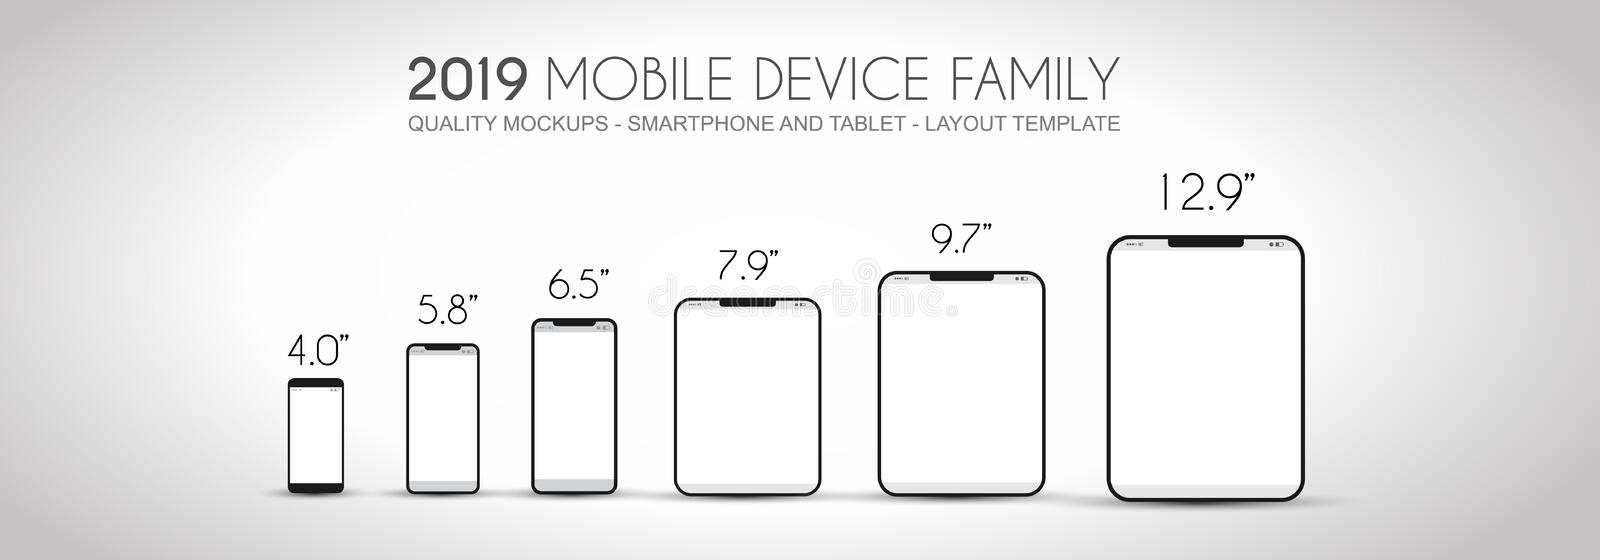 Complete Next generation device family included mobile phones, t royalty free illustration